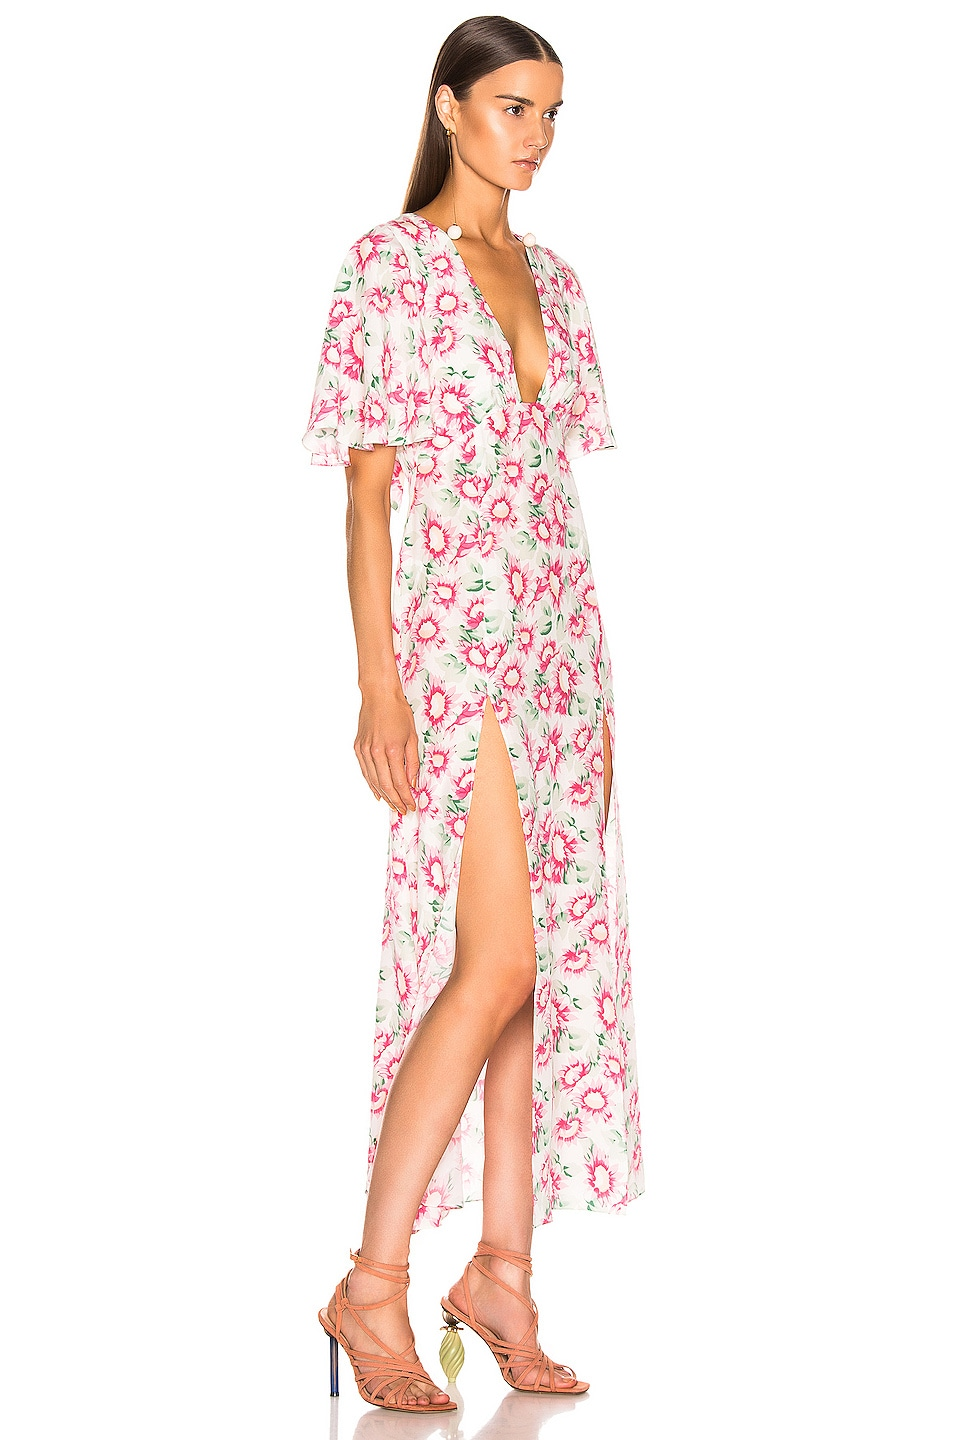 Image 2 of Les Reveries Deep Neck Petal Sleeve Dress in Pink Daisy White